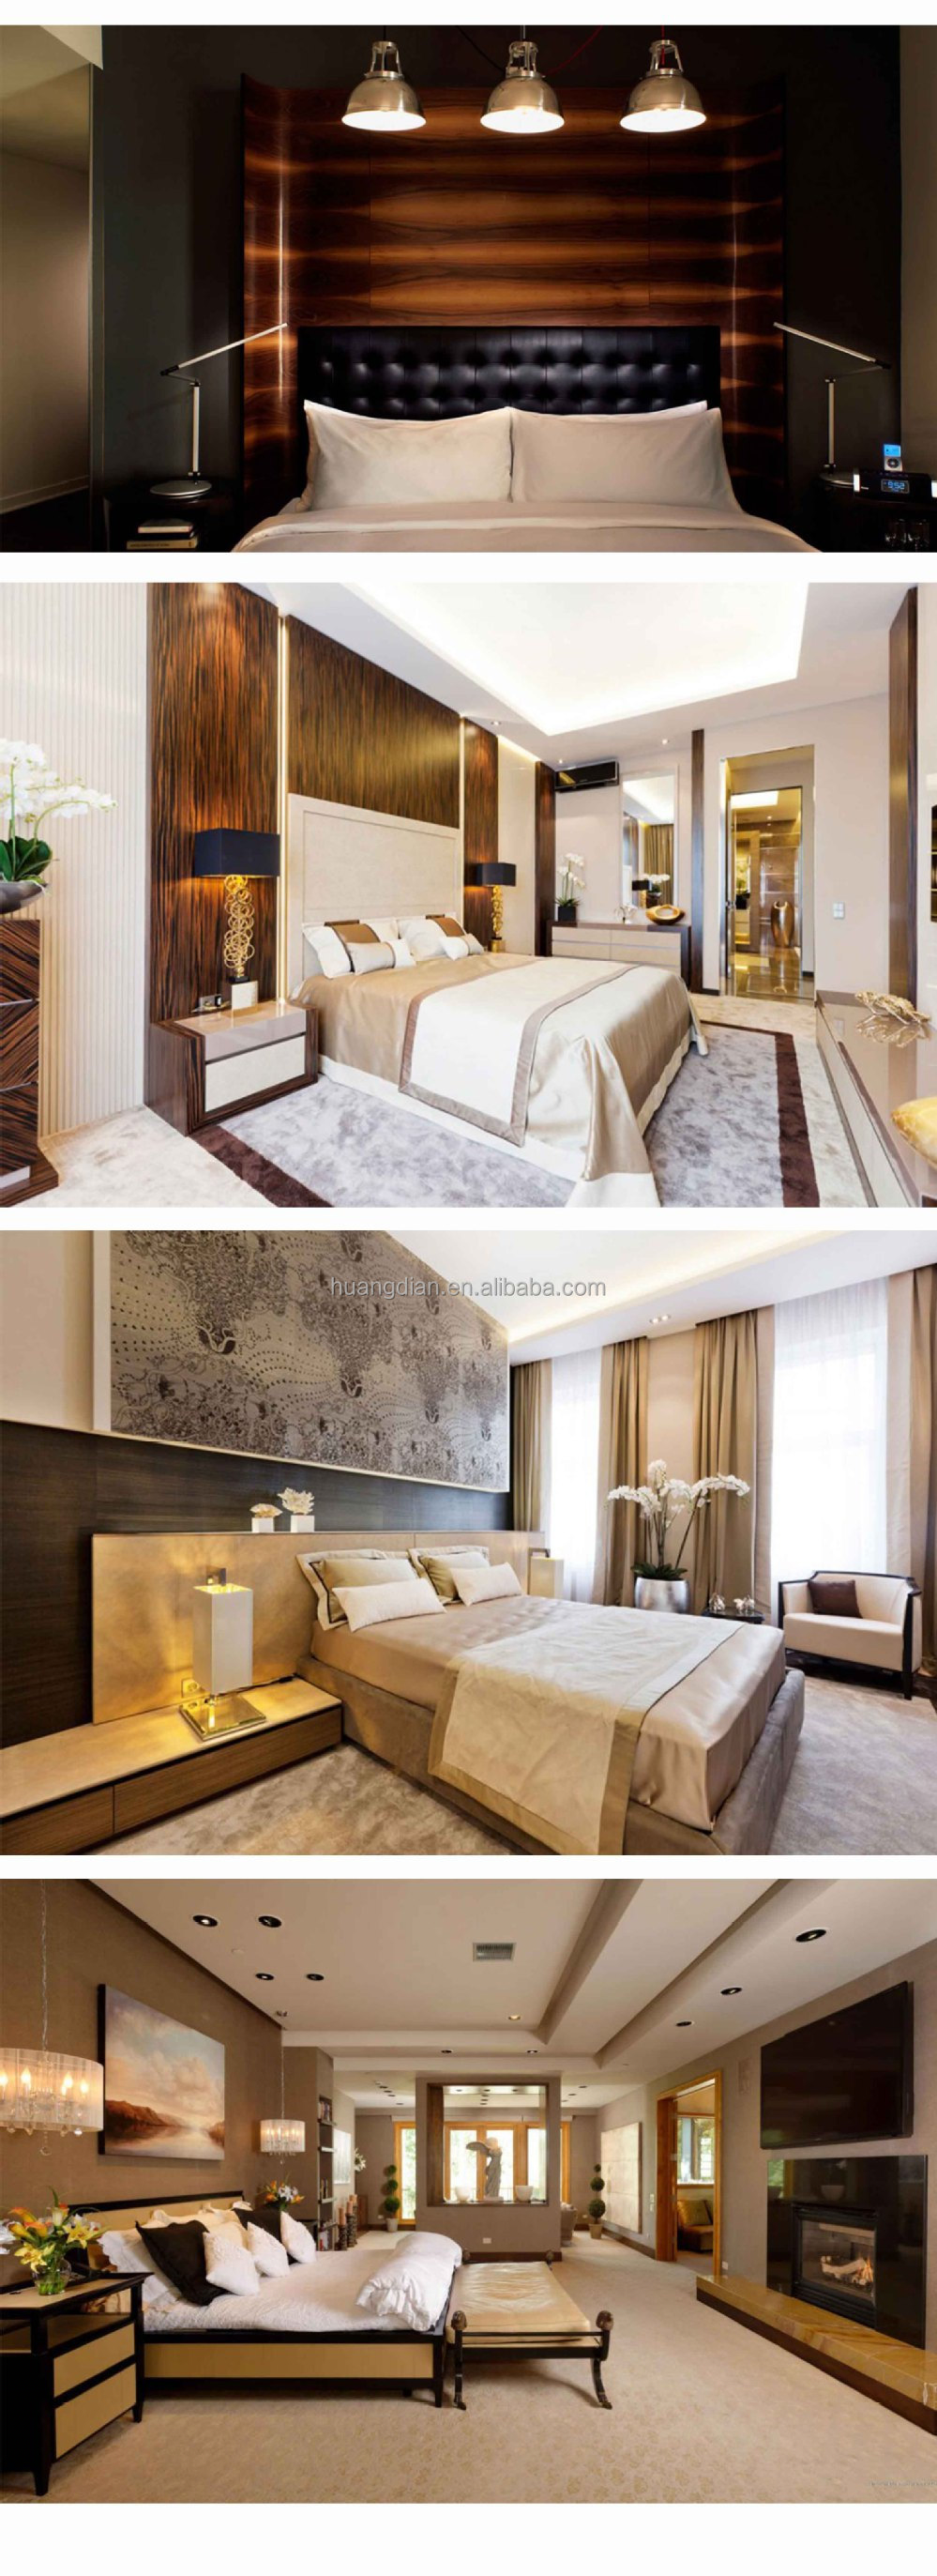 high end bedroom sets. malaysia high end bedroom hotel room furniture luxury bed set sets